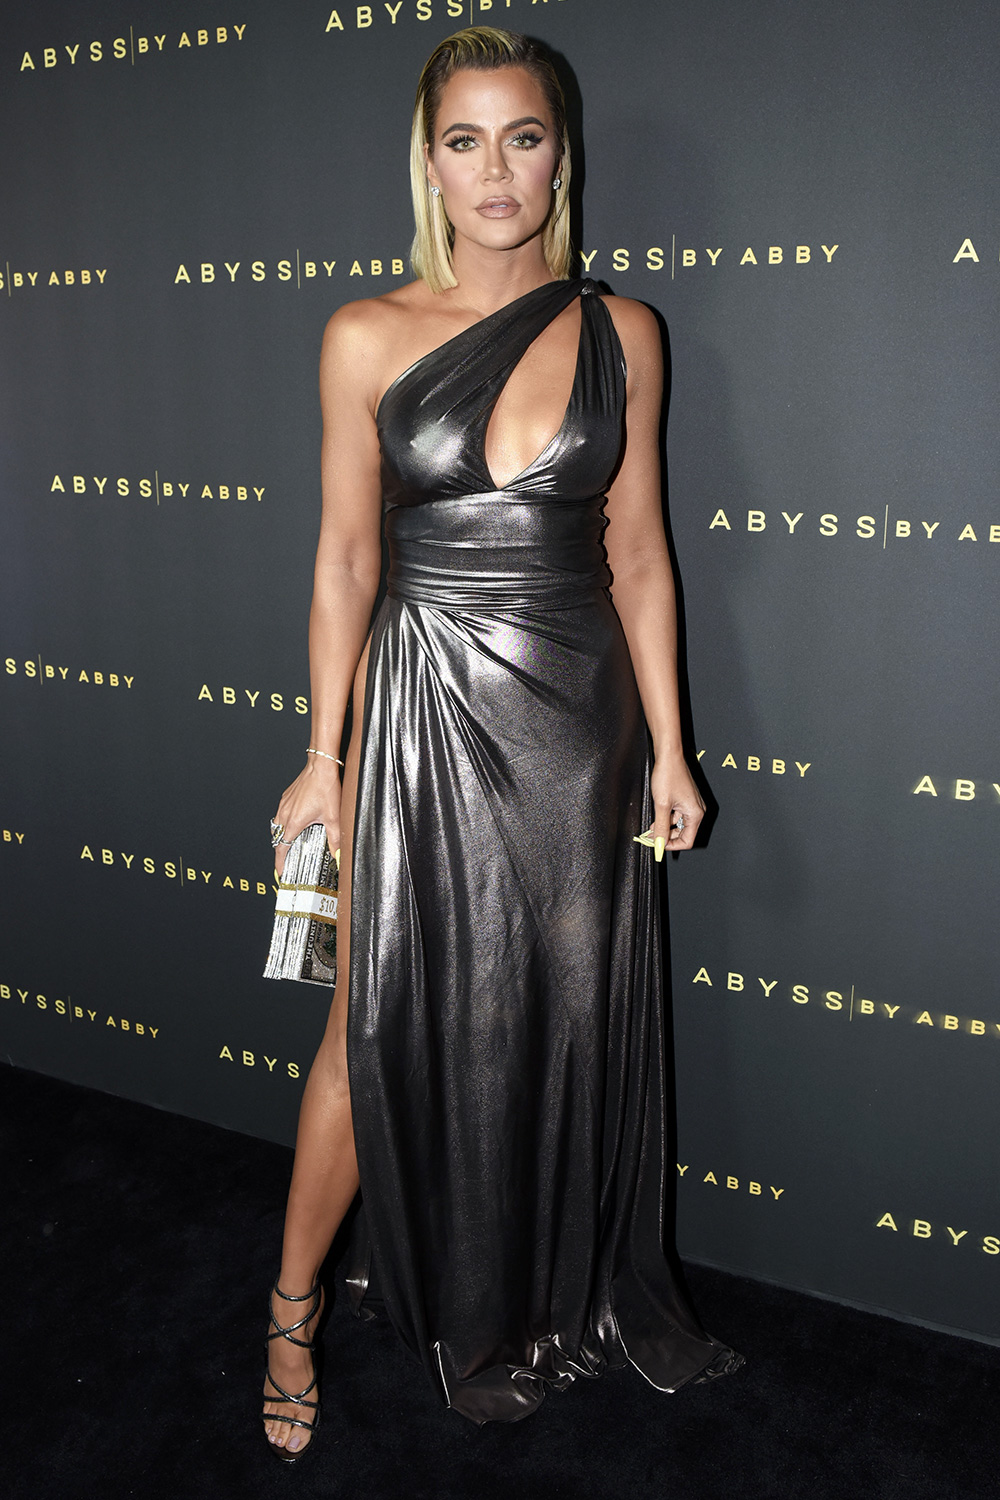 Khloe Kardashian attends Abyss By Abby - Arabian Nights Collection Launch Party at Casita Hollywood on January 21, 2020 in Los Angeles, California